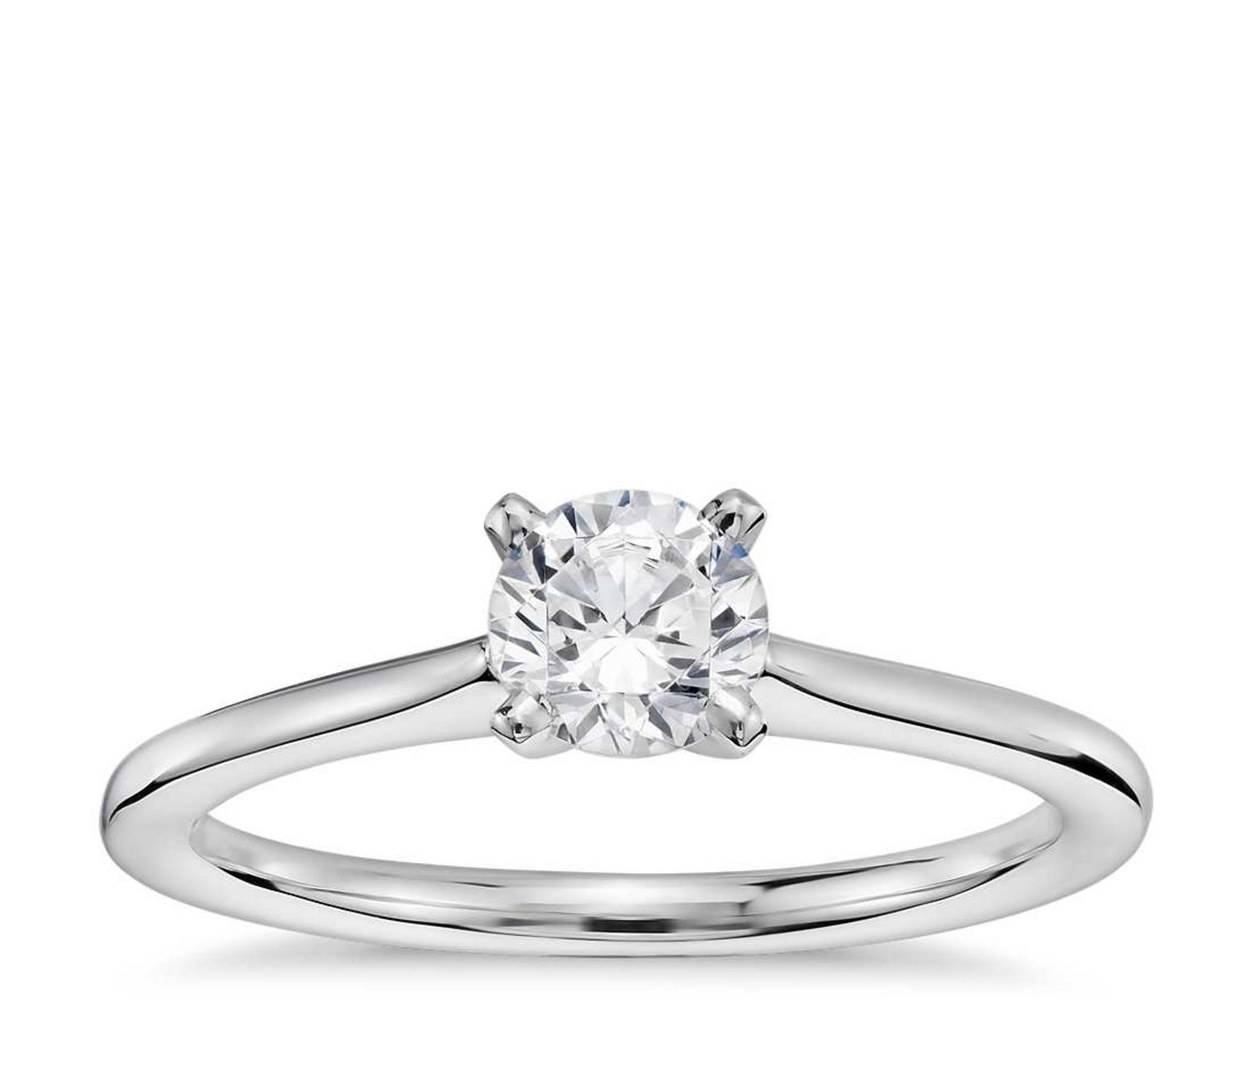 Affordable Engagement Rings Under $1,000 | Glamour Pertaining To Engagement Rings For Women Under (View 3 of 15)